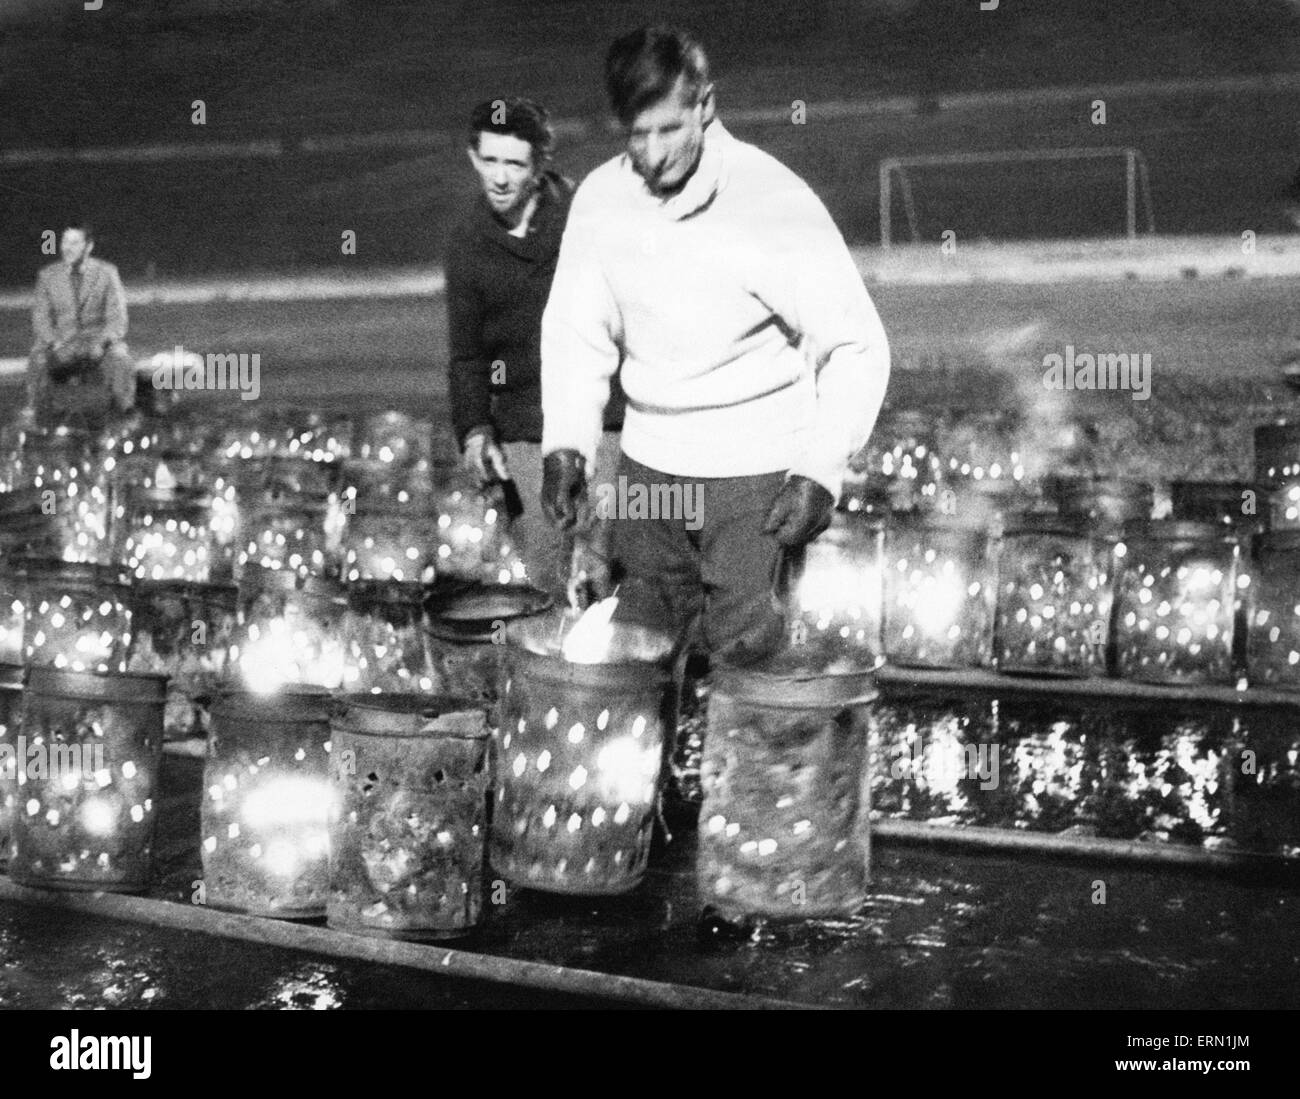 Warming up the frozen pitch at St Andrews, home ground of Birmingham City football club. 21st February 1963. - Stock Image